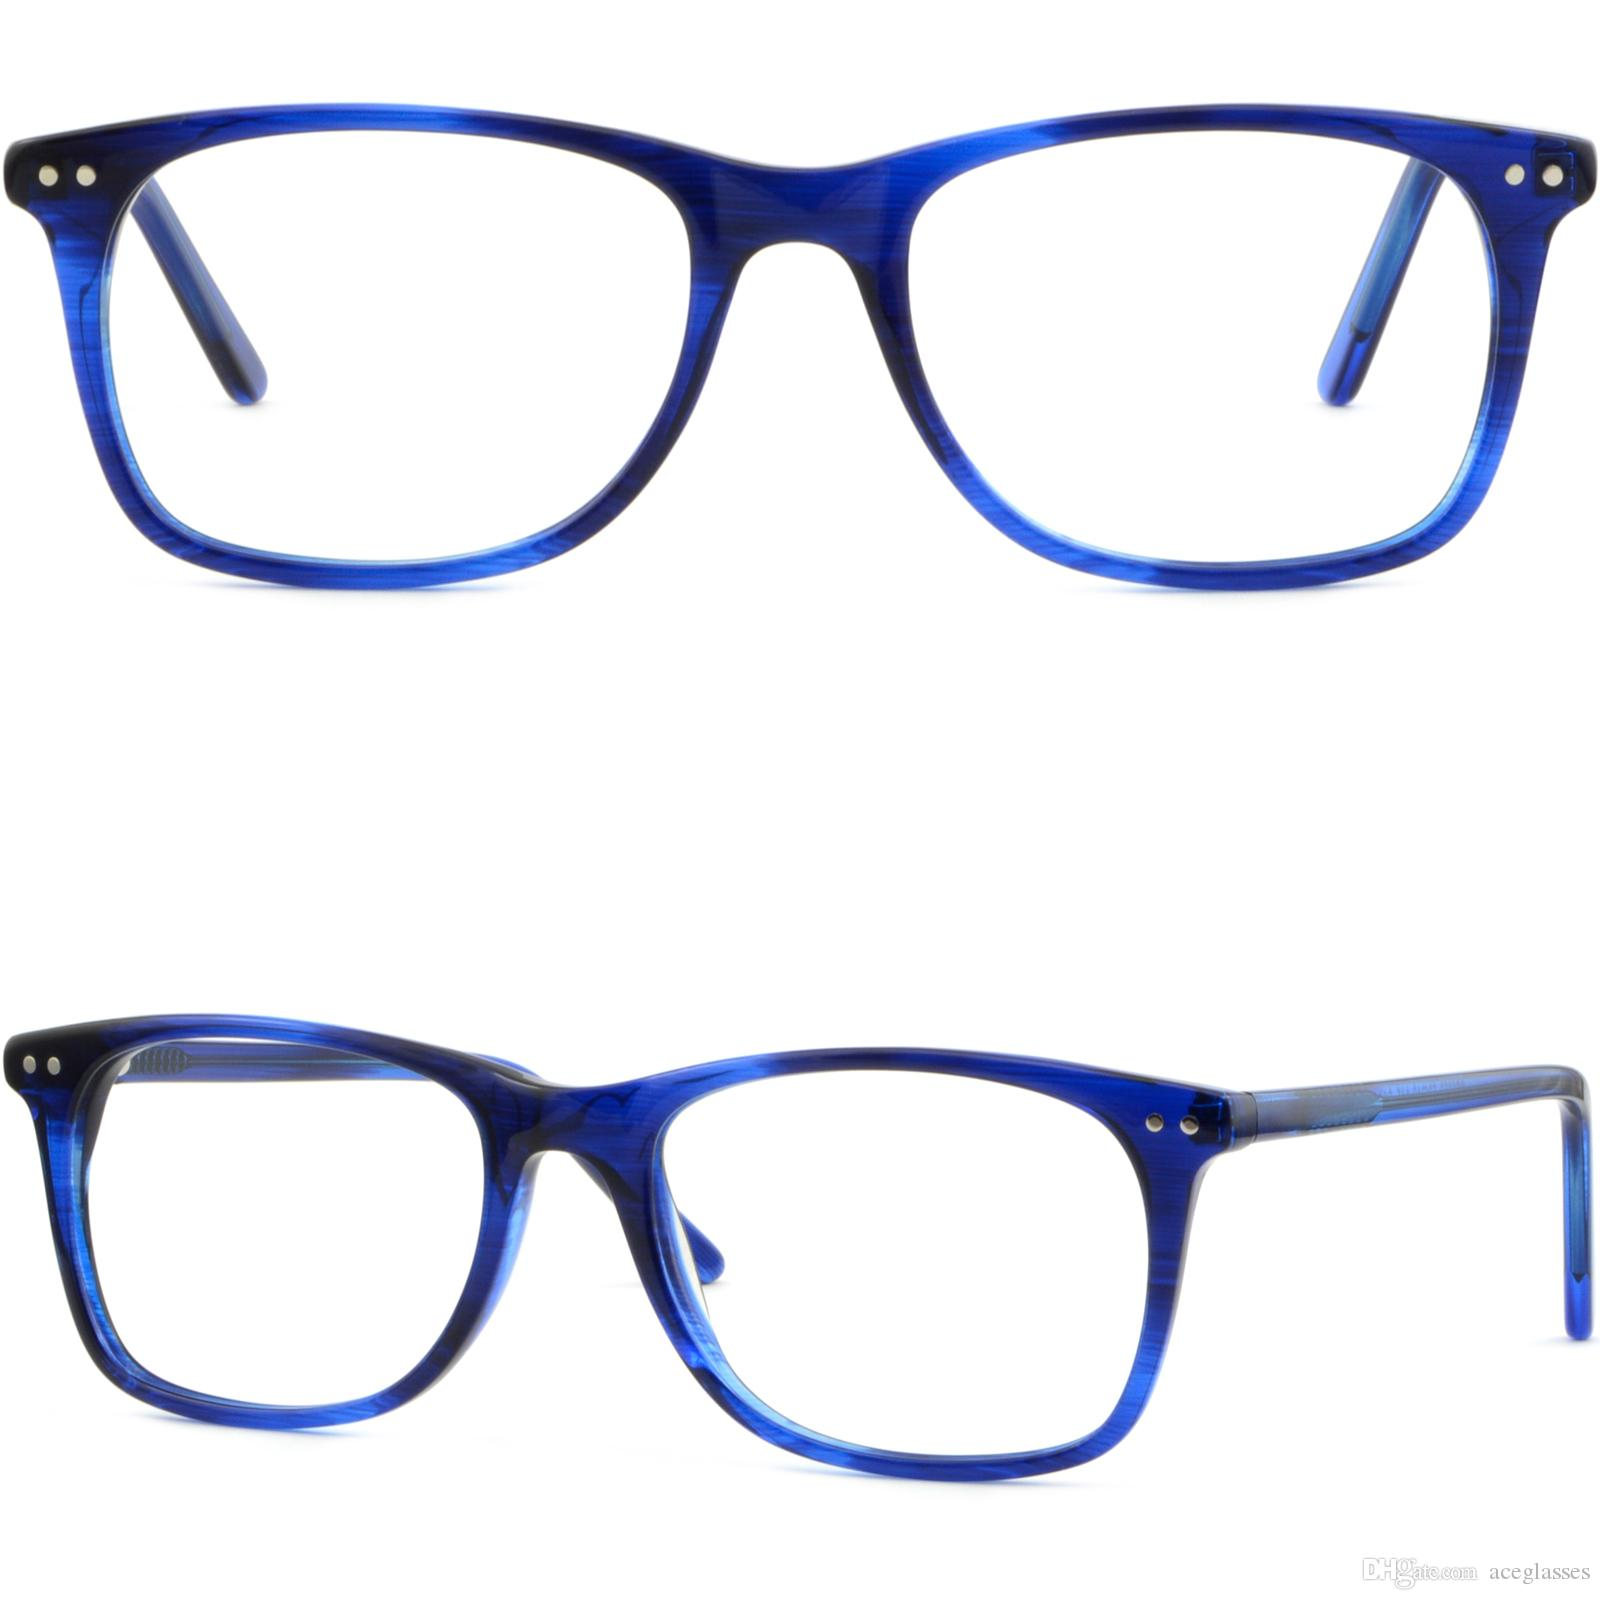 6a21fb3edb Men Women Plastic Frame Spring Hinge Prescription Glasses Shiny Pieces Navy  Blue Oga Eyeglass Frames Order Eyeglass Frames Online From Aceglasses